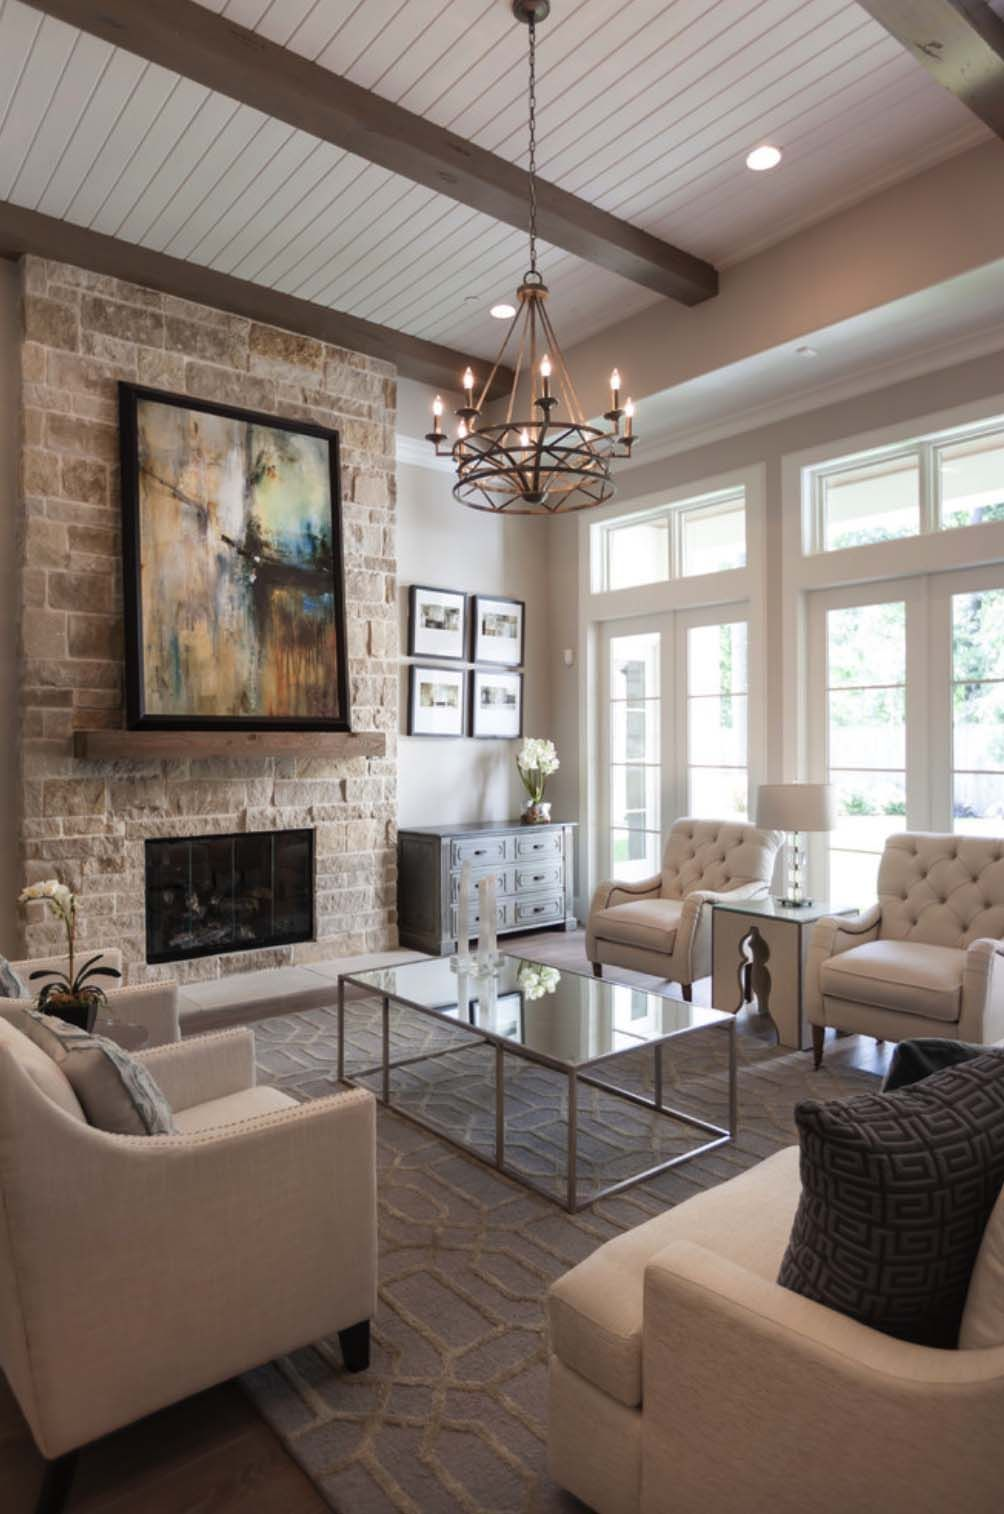 Merveilleux This Warm And Inviting Transitional Style Home Was Designed By Frankel  Building Group, Located In The Woodlands Reserve, In Houston, Texas.